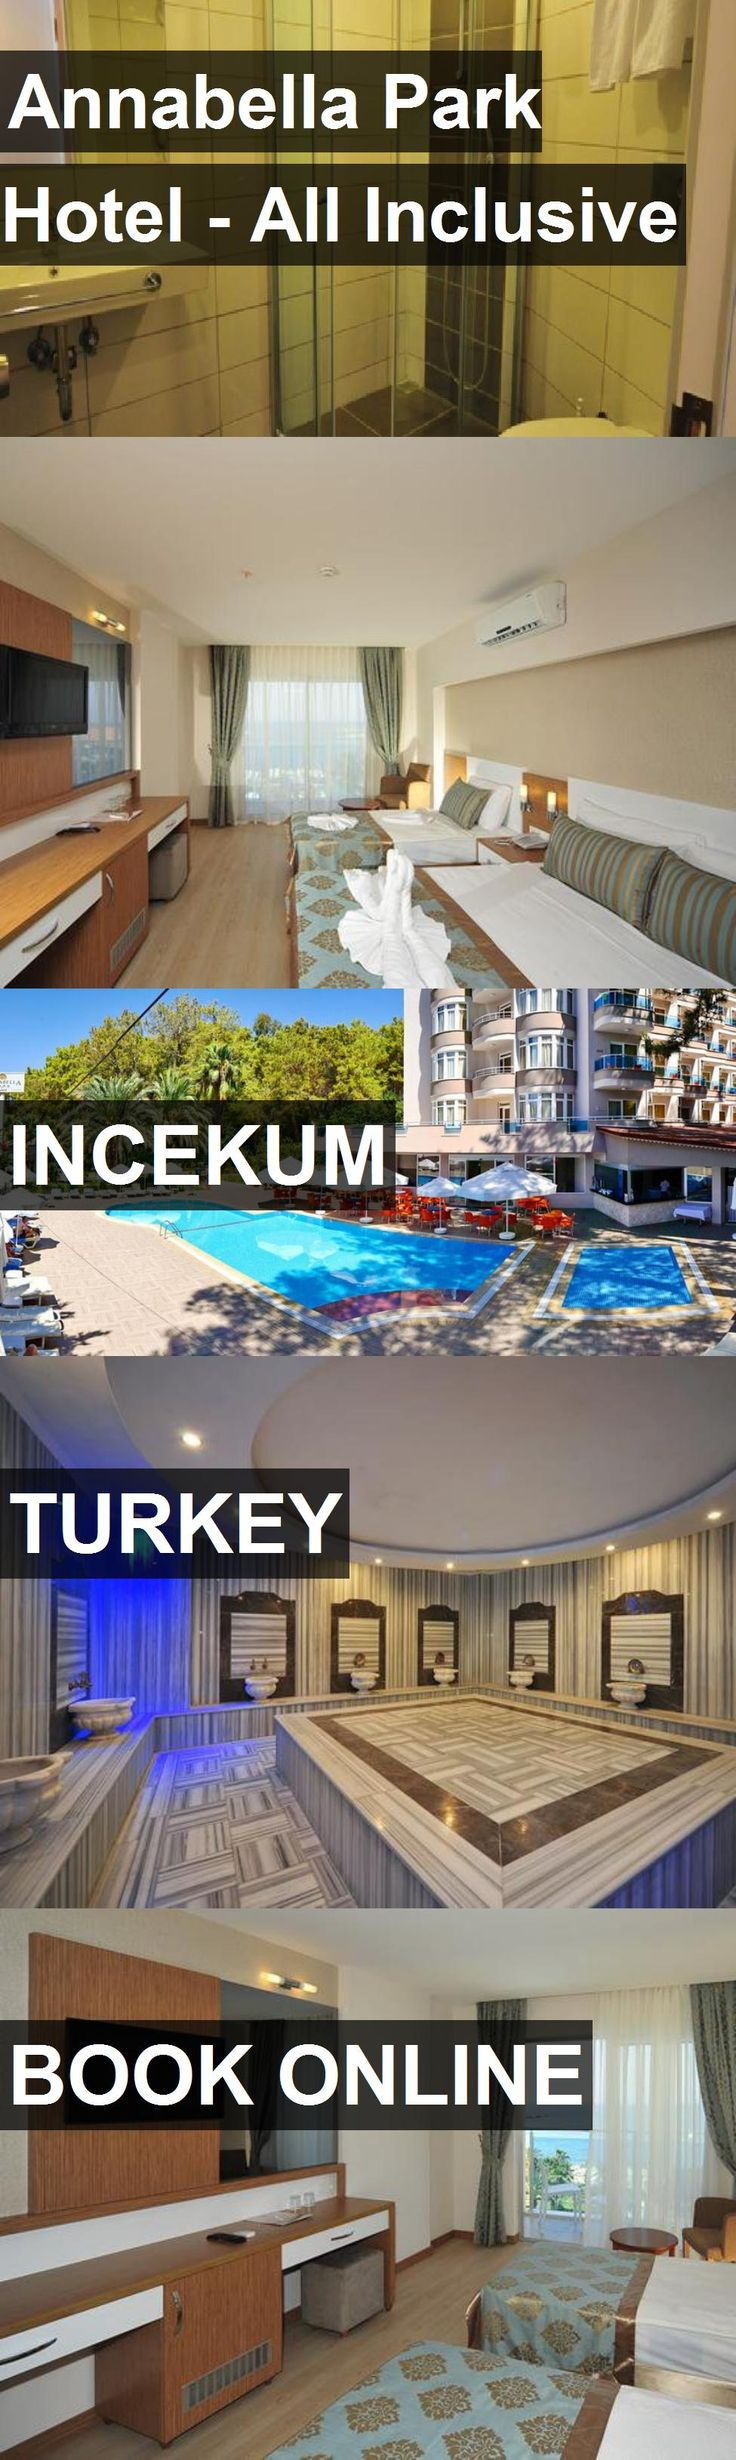 Annabella Park Hotel - All Inclusive in Incekum, Turkey. For more information, photos, reviews and best prices please follow the link. #Turkey #Incekum #travel #vacation #hotel